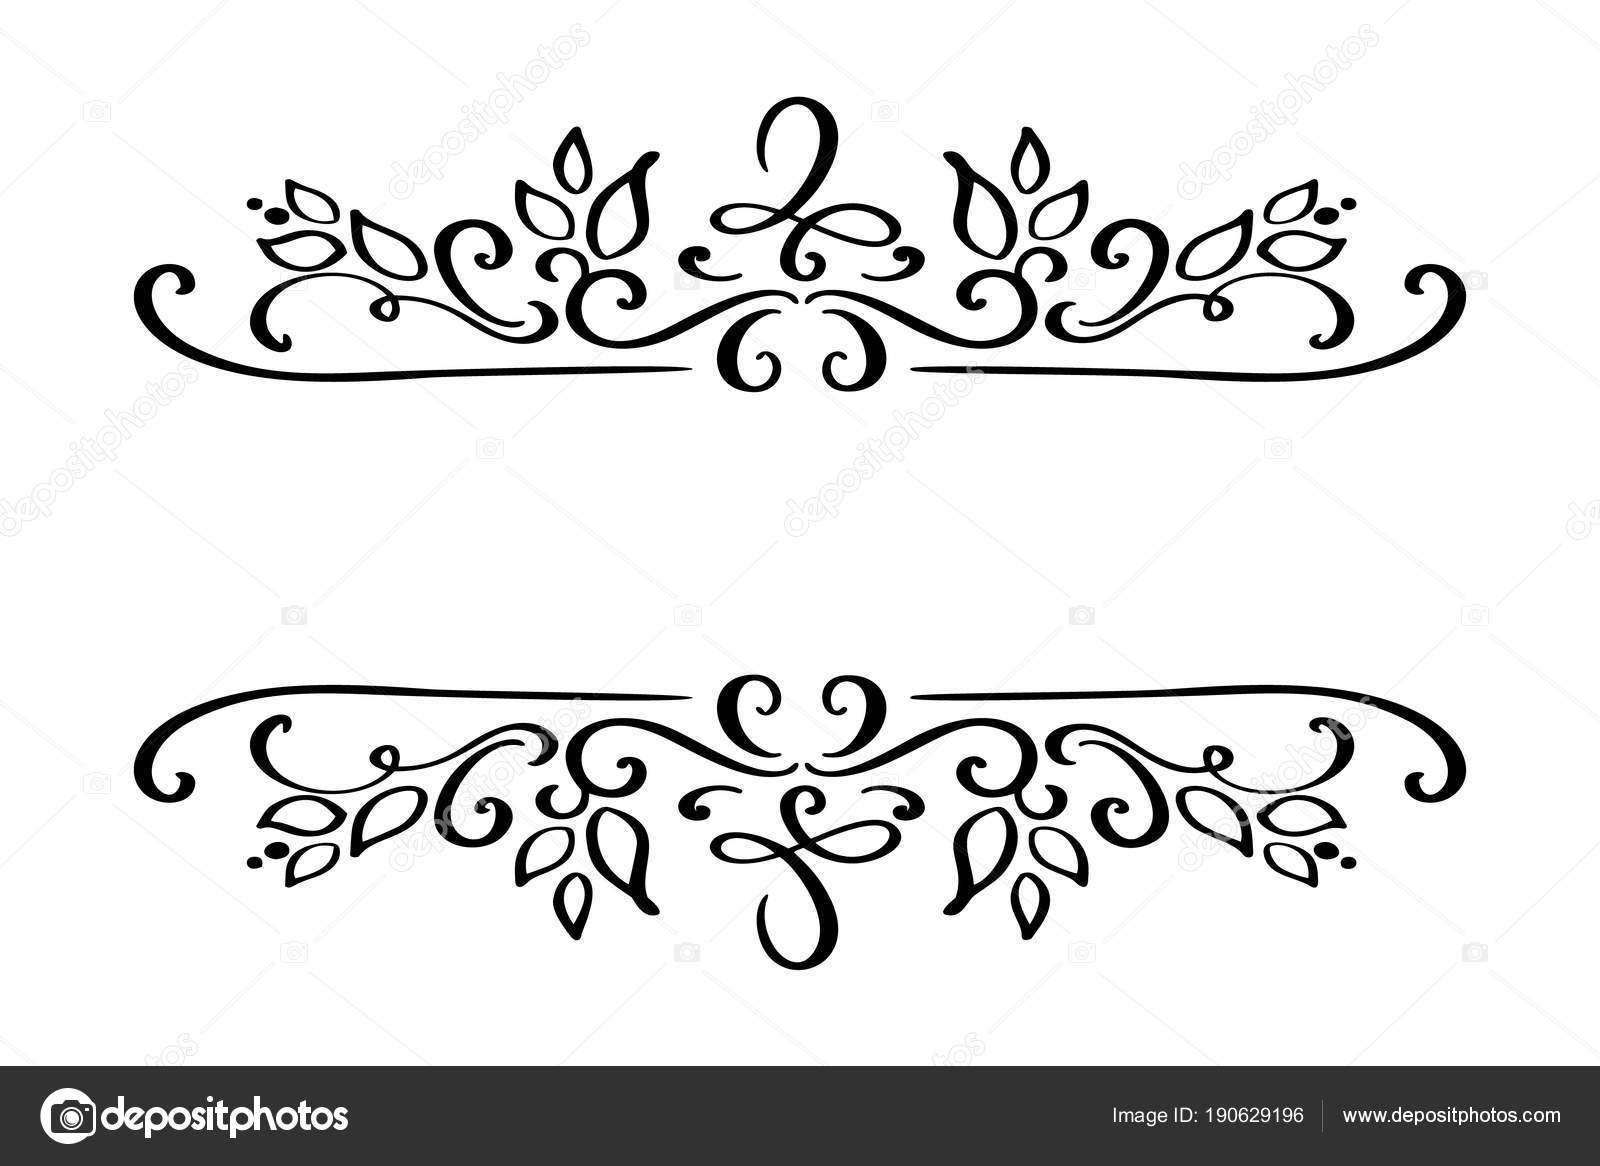 Hand Drawn Border Flourish Separator Calligraphy Designer